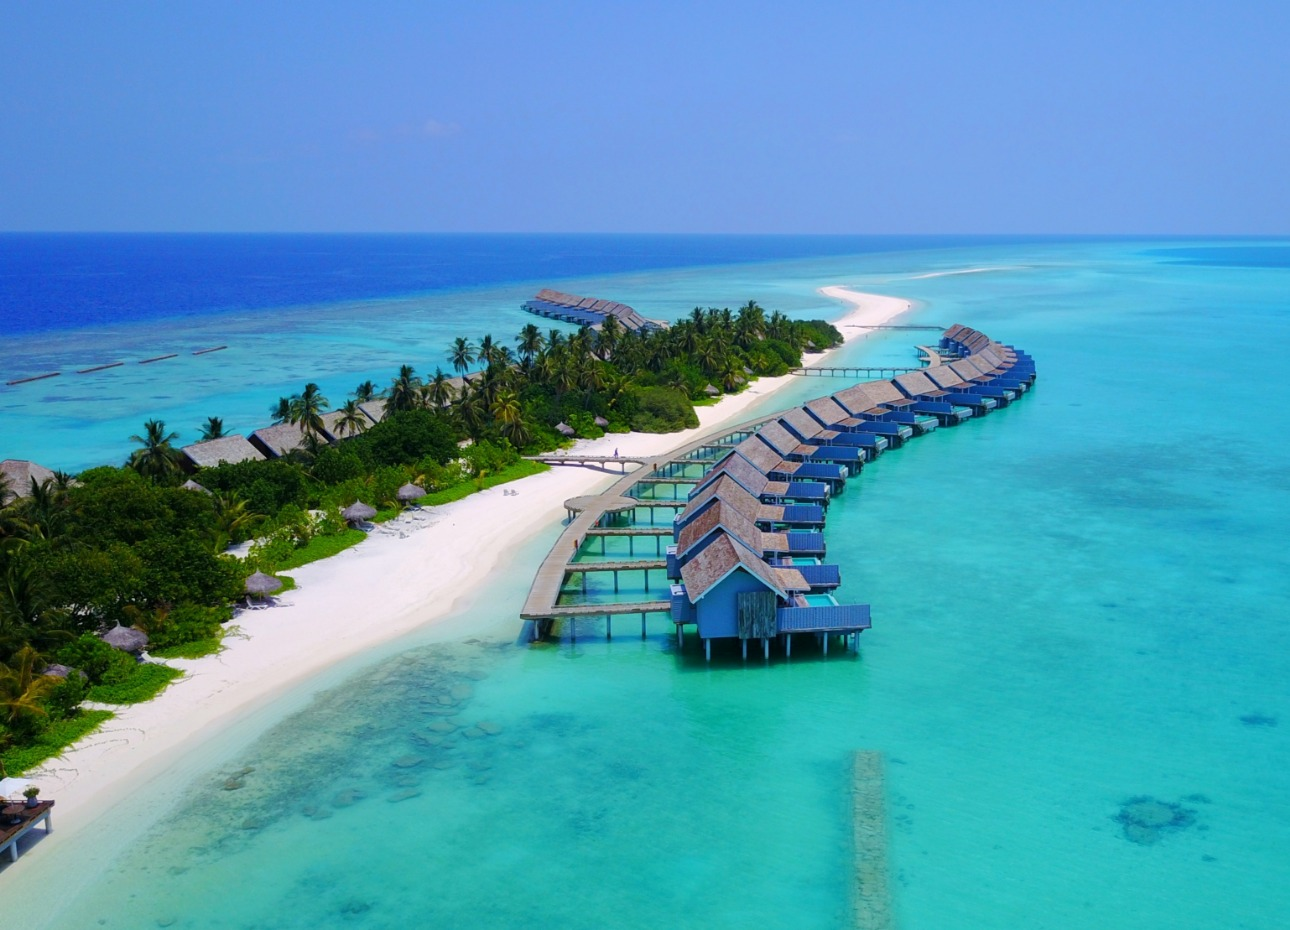 Tropical Maldivian resort, with traditional water bungalows